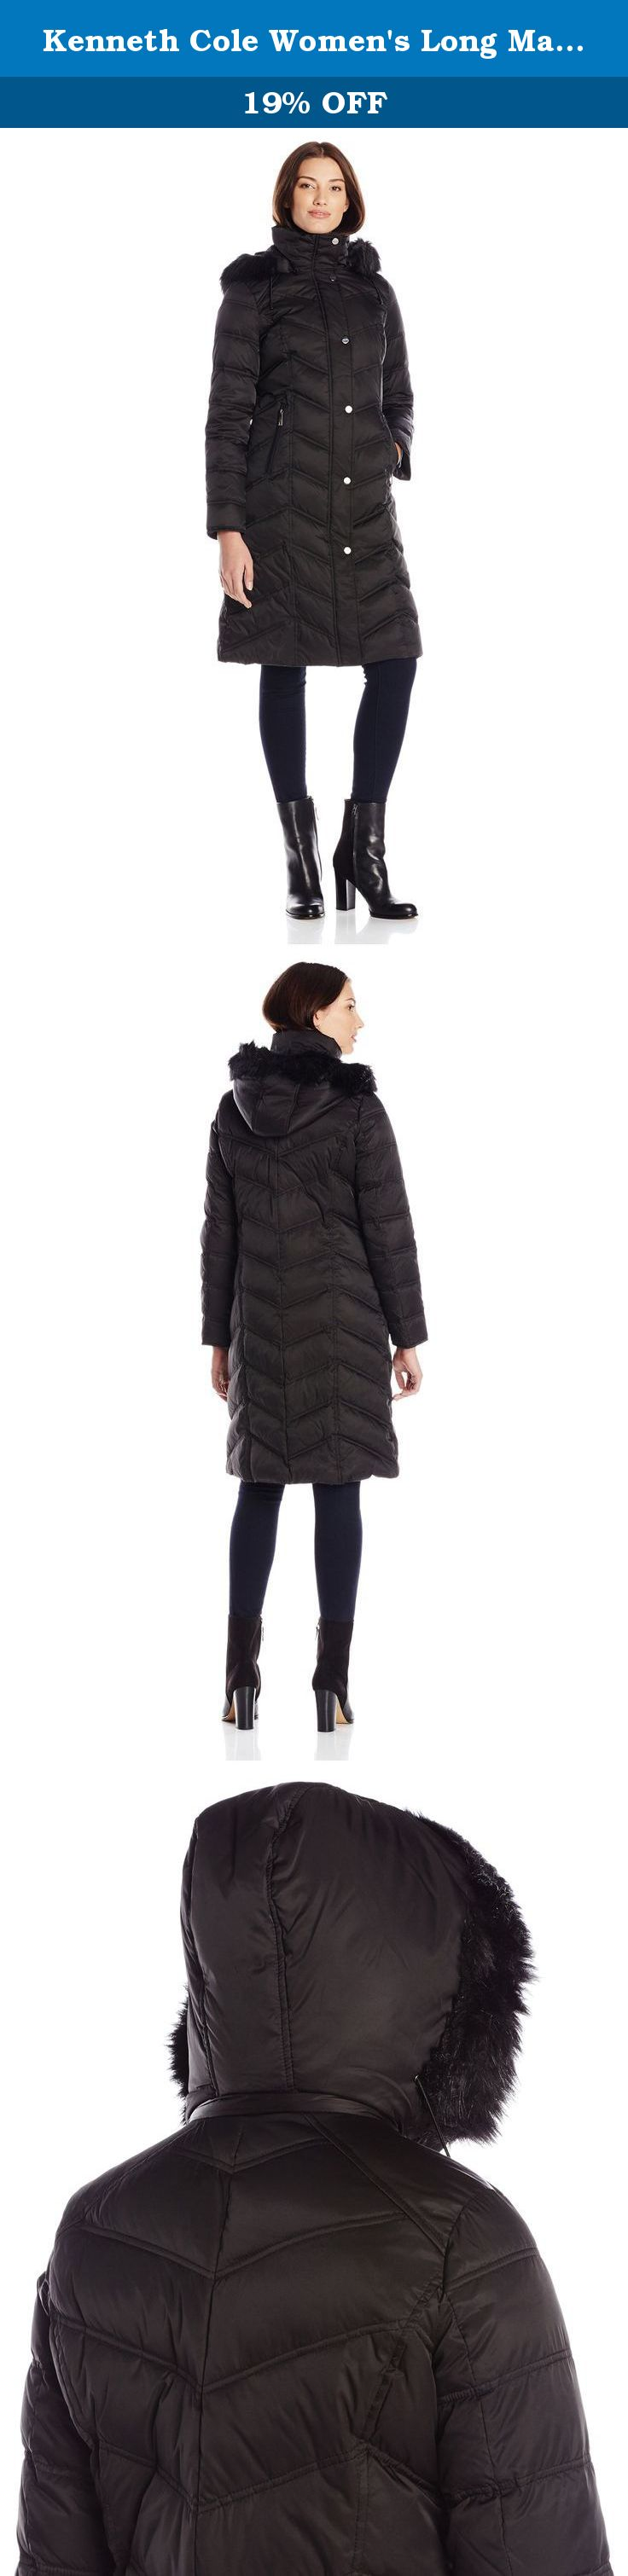 Women's Maxi Coat Fur Long With Kenneth Down Faux Cole HoodBlack n8k0wPOX